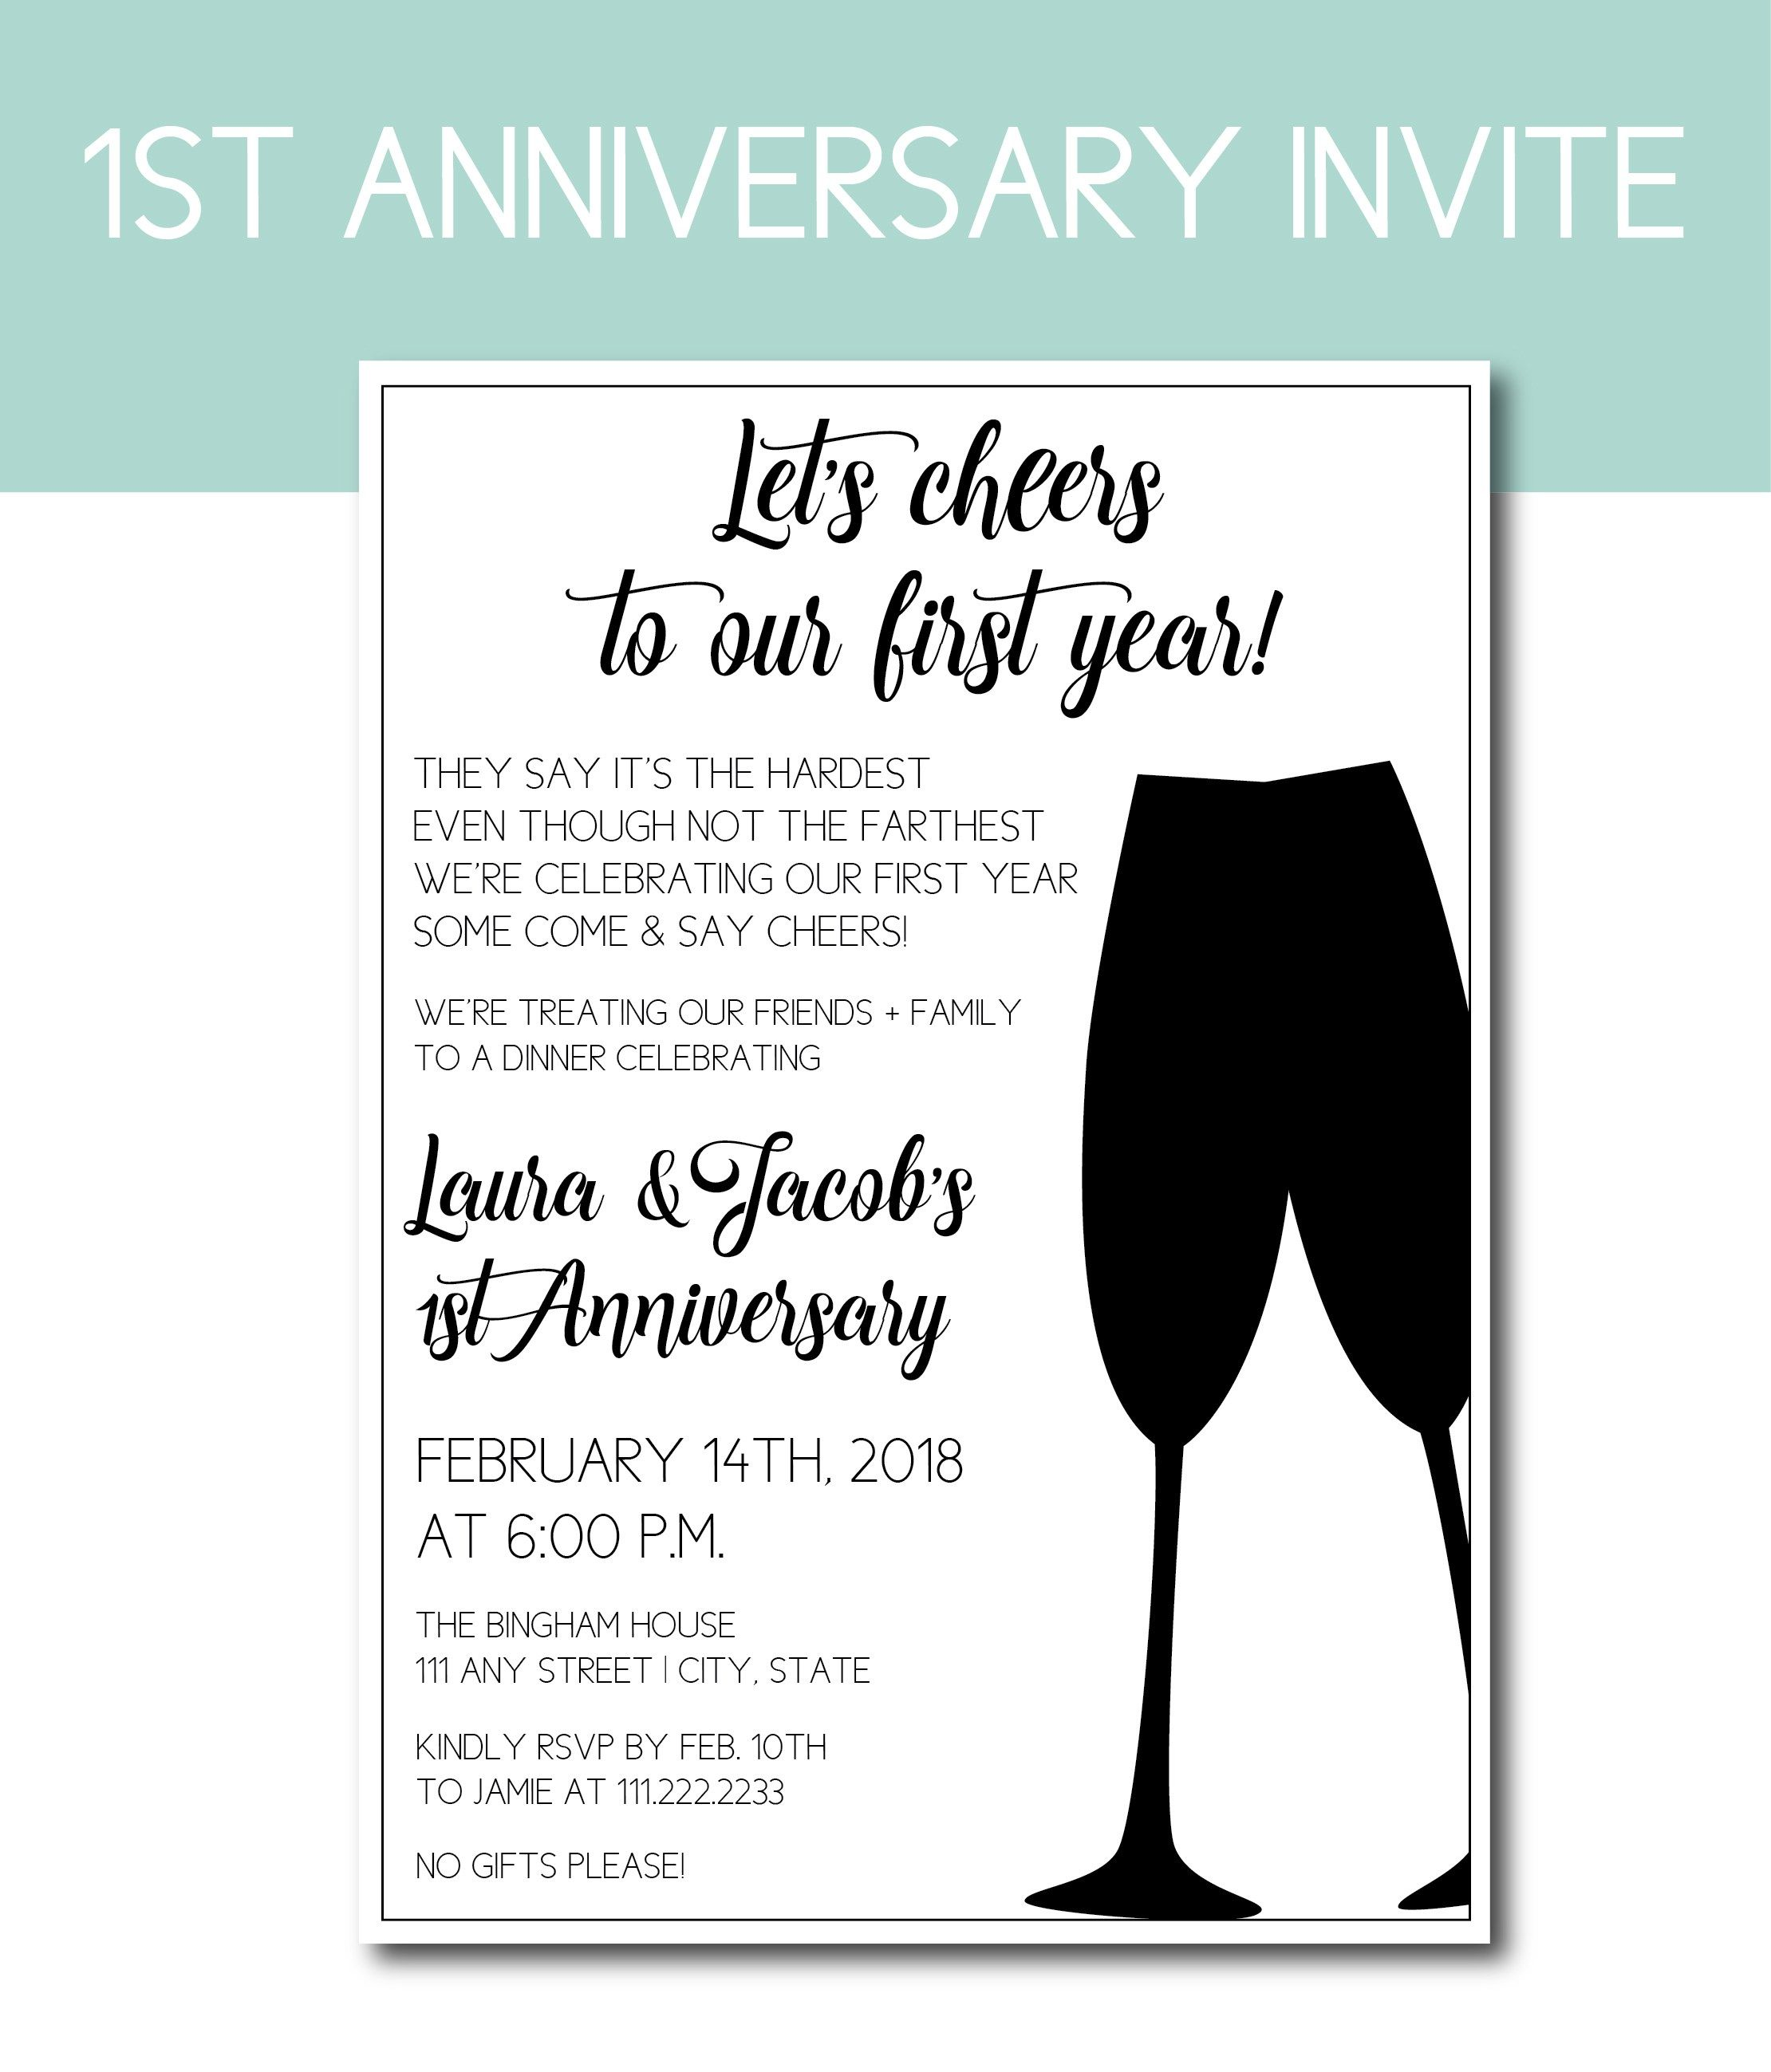 Anniversary Ideas For Milestones Cards And Invites What To Give For Each Year Anniversary Party Invitations Anniversary Party Decorations Wedding Anniversary Party Invitations